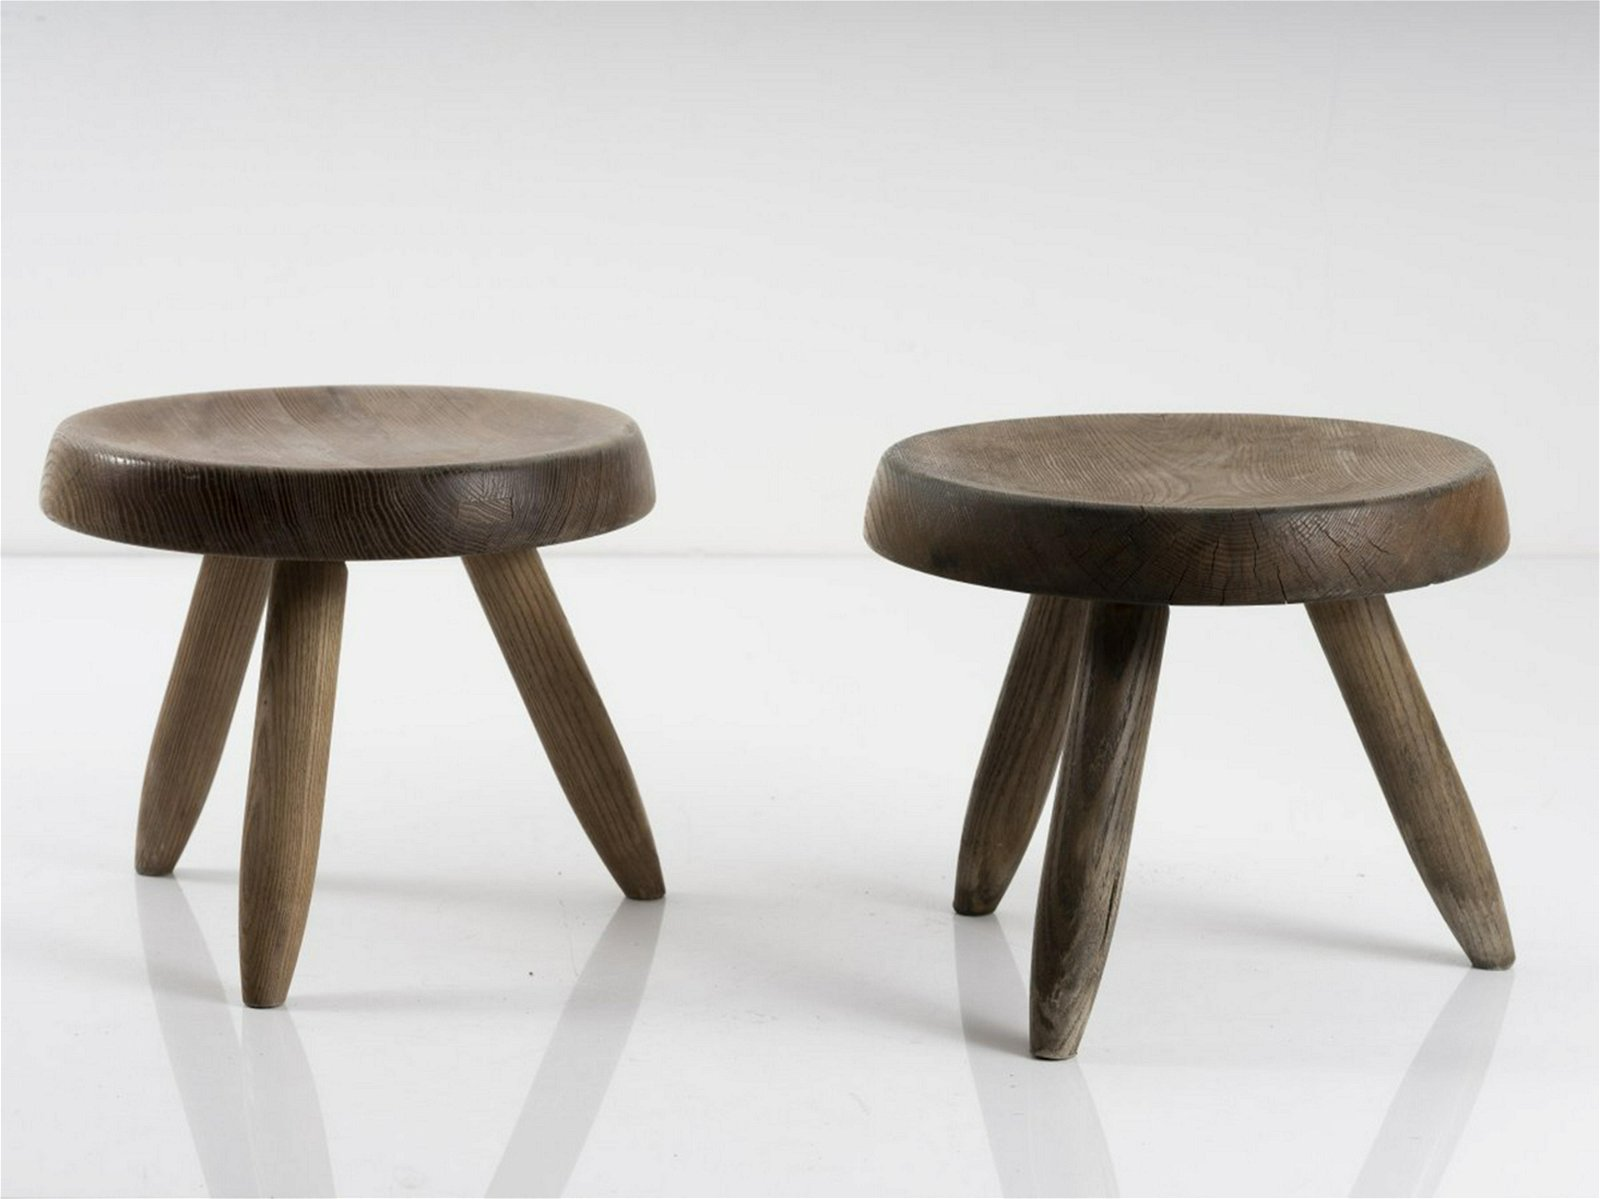 Charlotte Perriand, Two stools, 1938